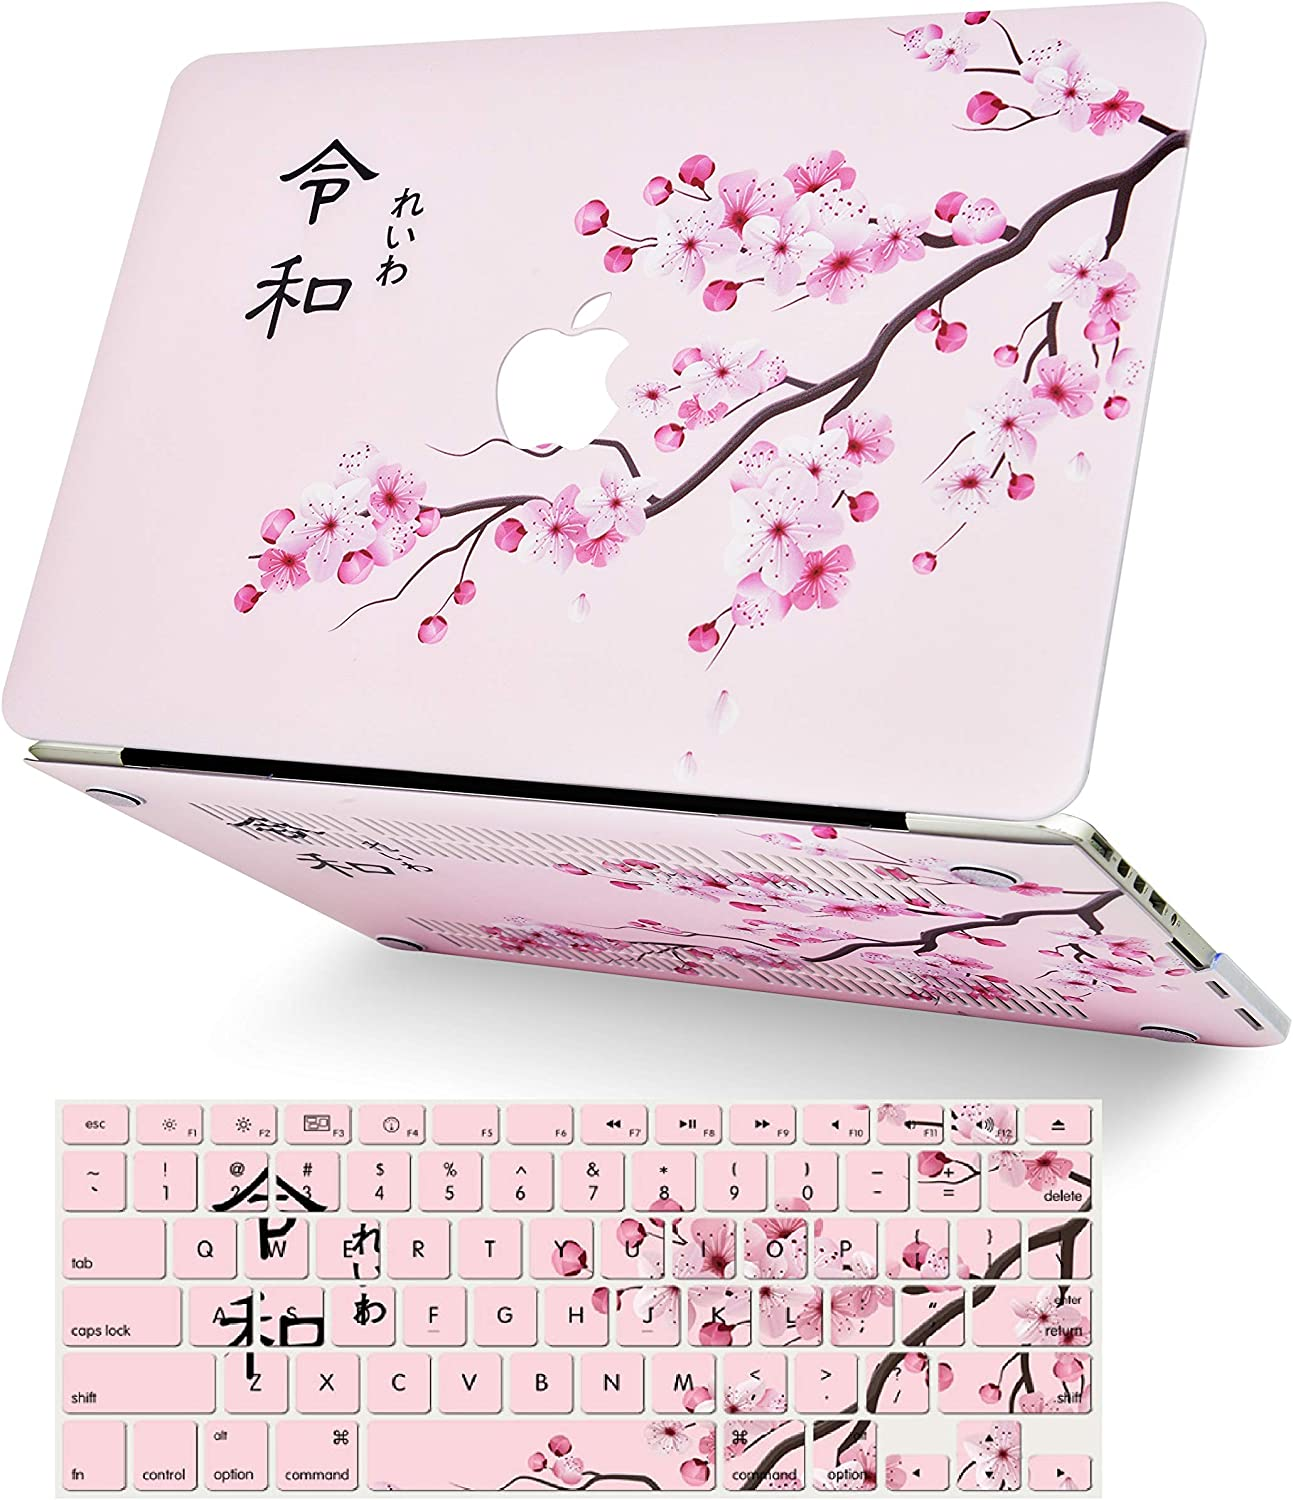 LuvCase 2 in 1 Laptop Case for MacBook Air 13 Inch (2020)(Touch ID) A2179 Retina Display Rubberized Plastic Hard Shell Cover & Keyboard Cover (Cherry Blossom)